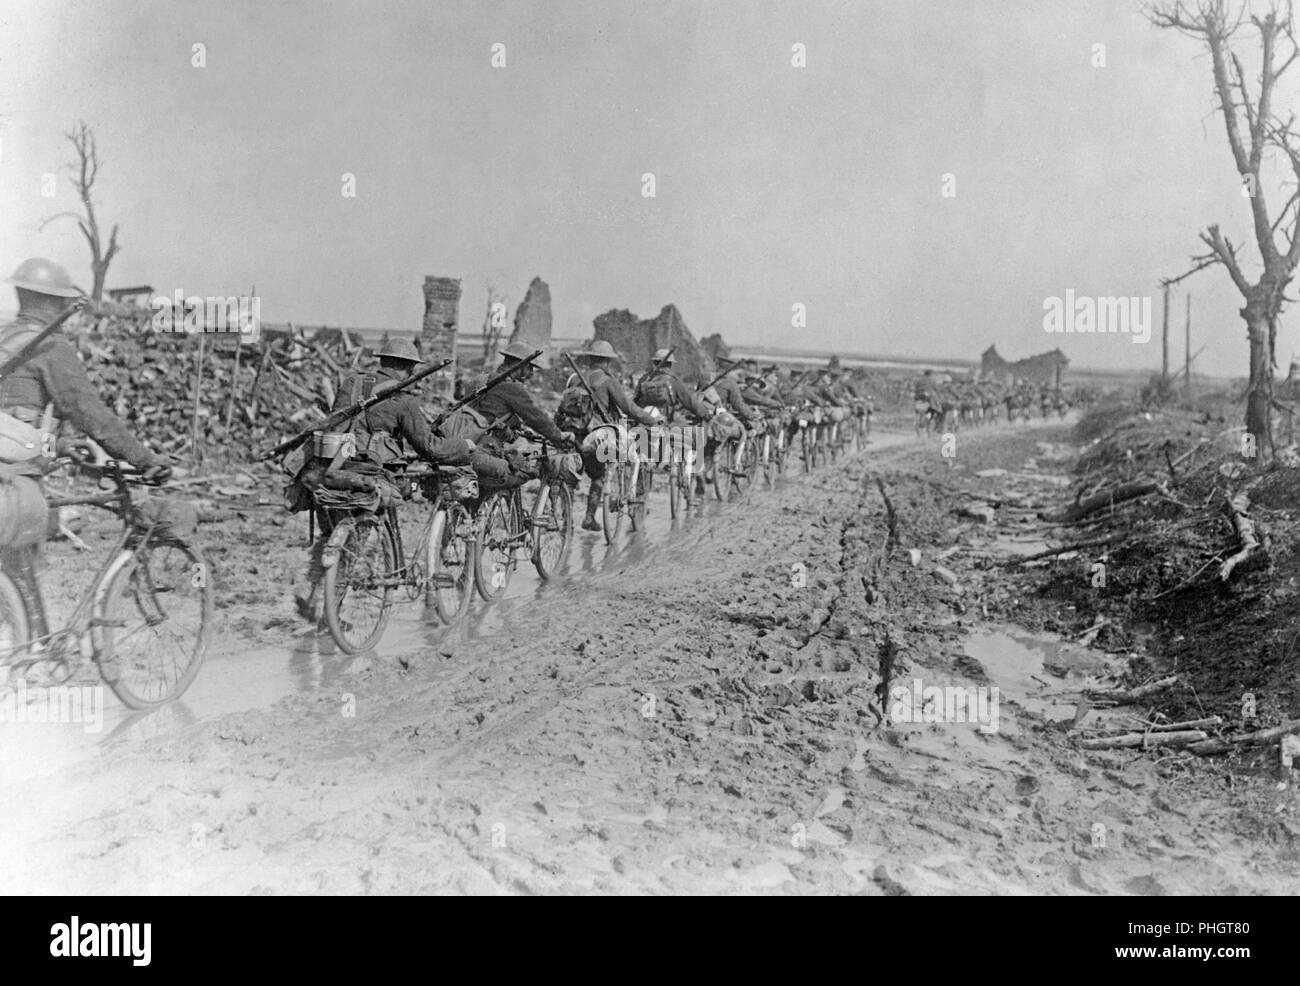 First World War 1914-1918. British soldiers with their bicycles are walking on a muddy road somewhere in France. They are passing demolished buildings and ruins. - Stock Image